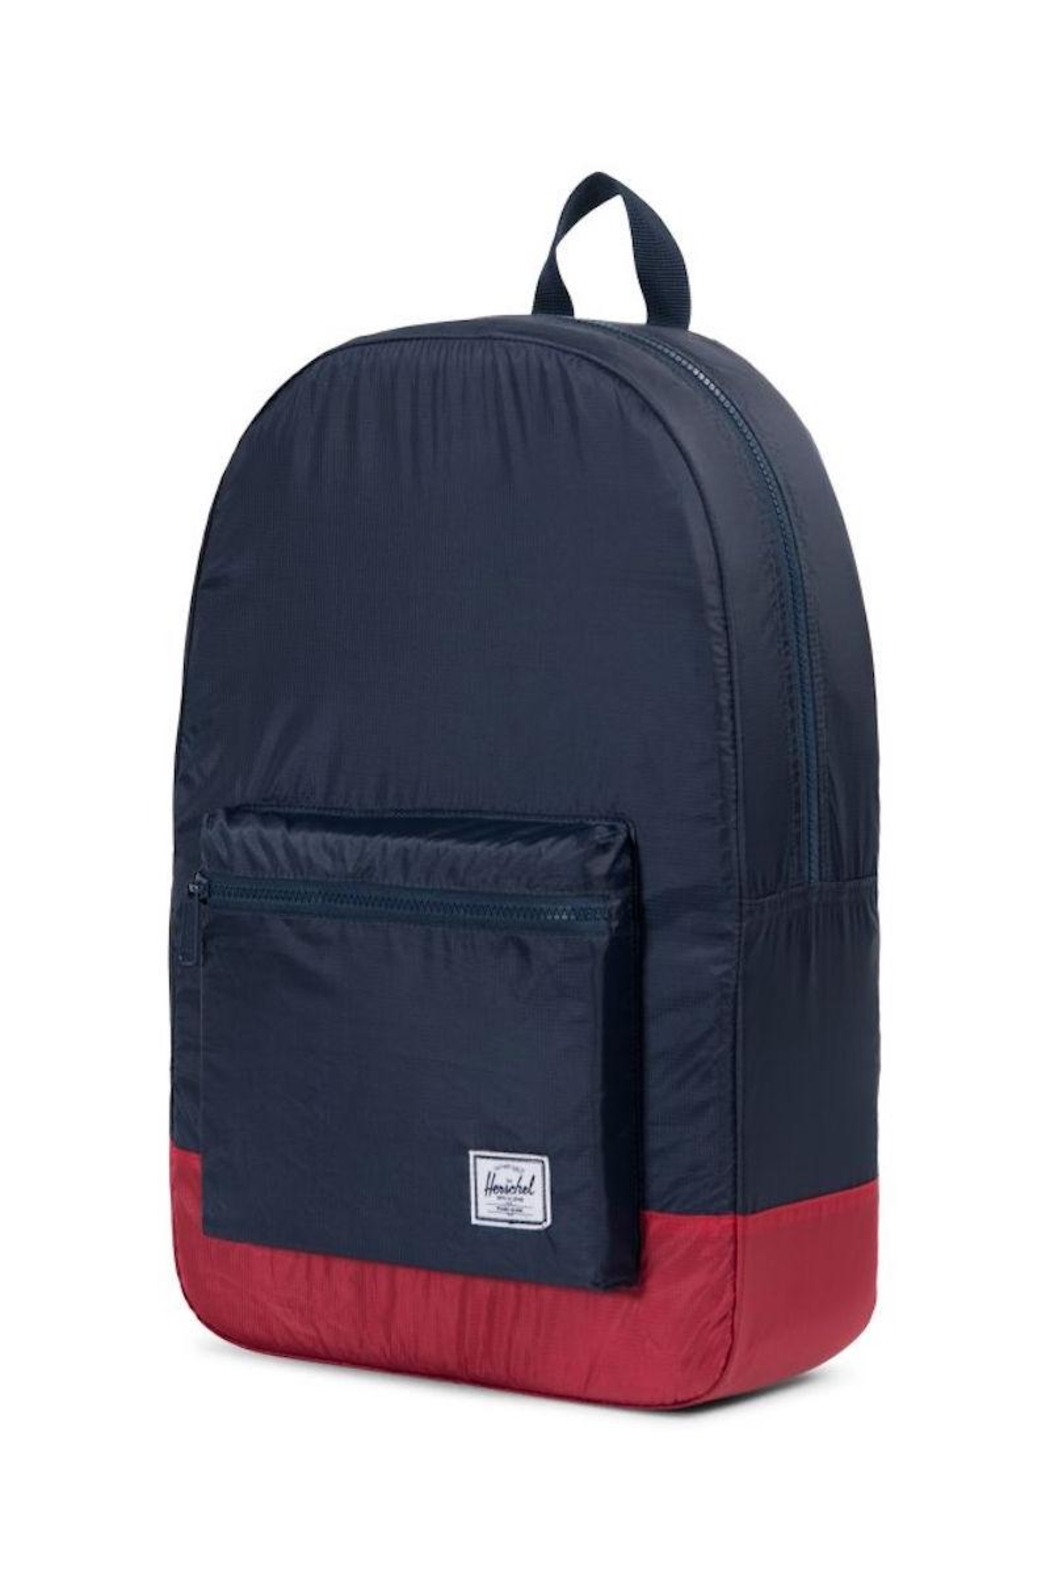 Herschel Supply Co. Navy/red Packable Daypack - Side Cropped Image